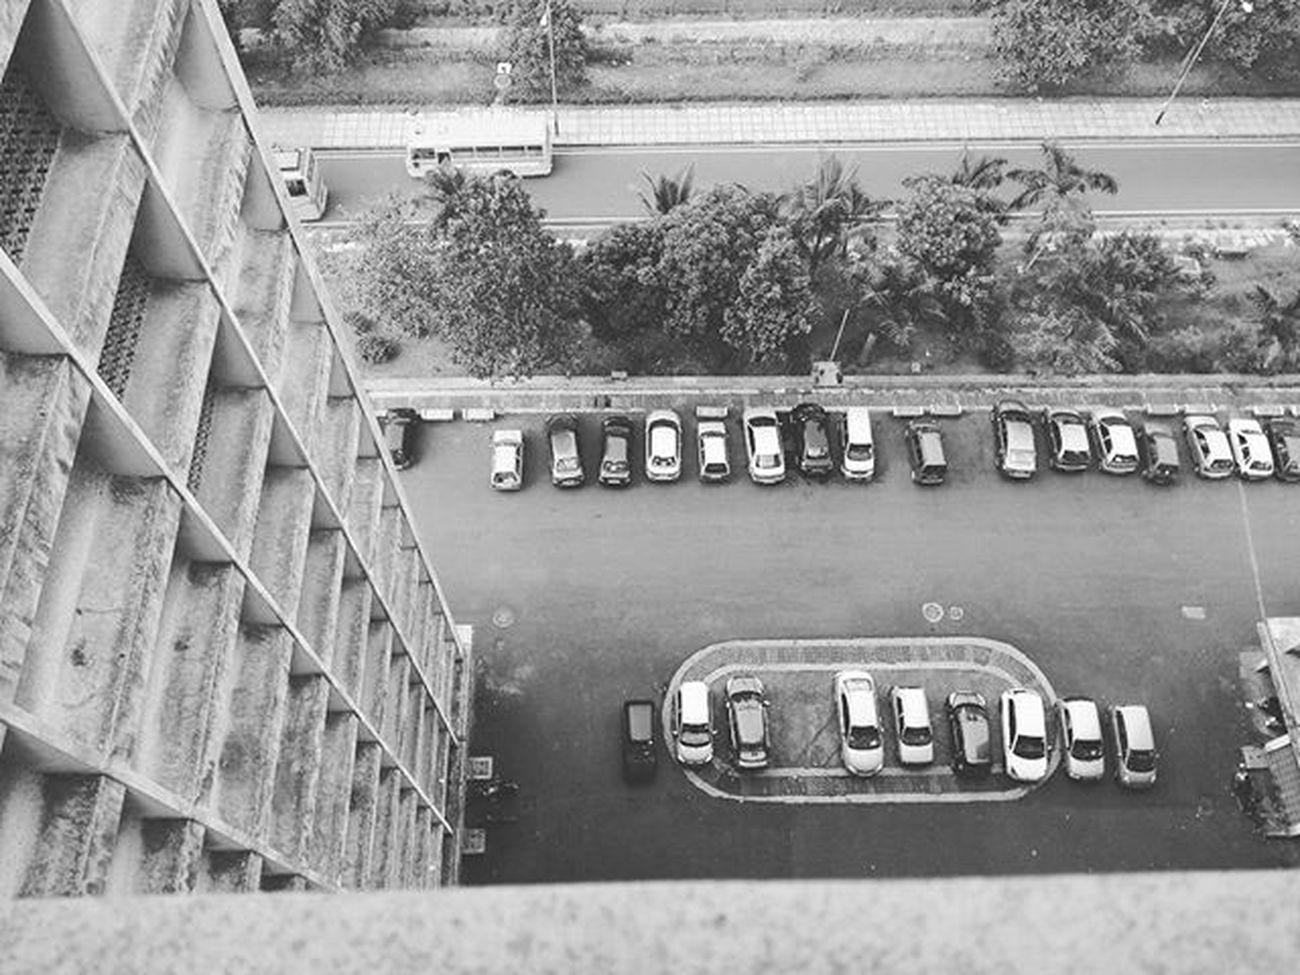 Jbclickz Parkinglot 15thfloorview Wellplanned Infrastructure Place Classified